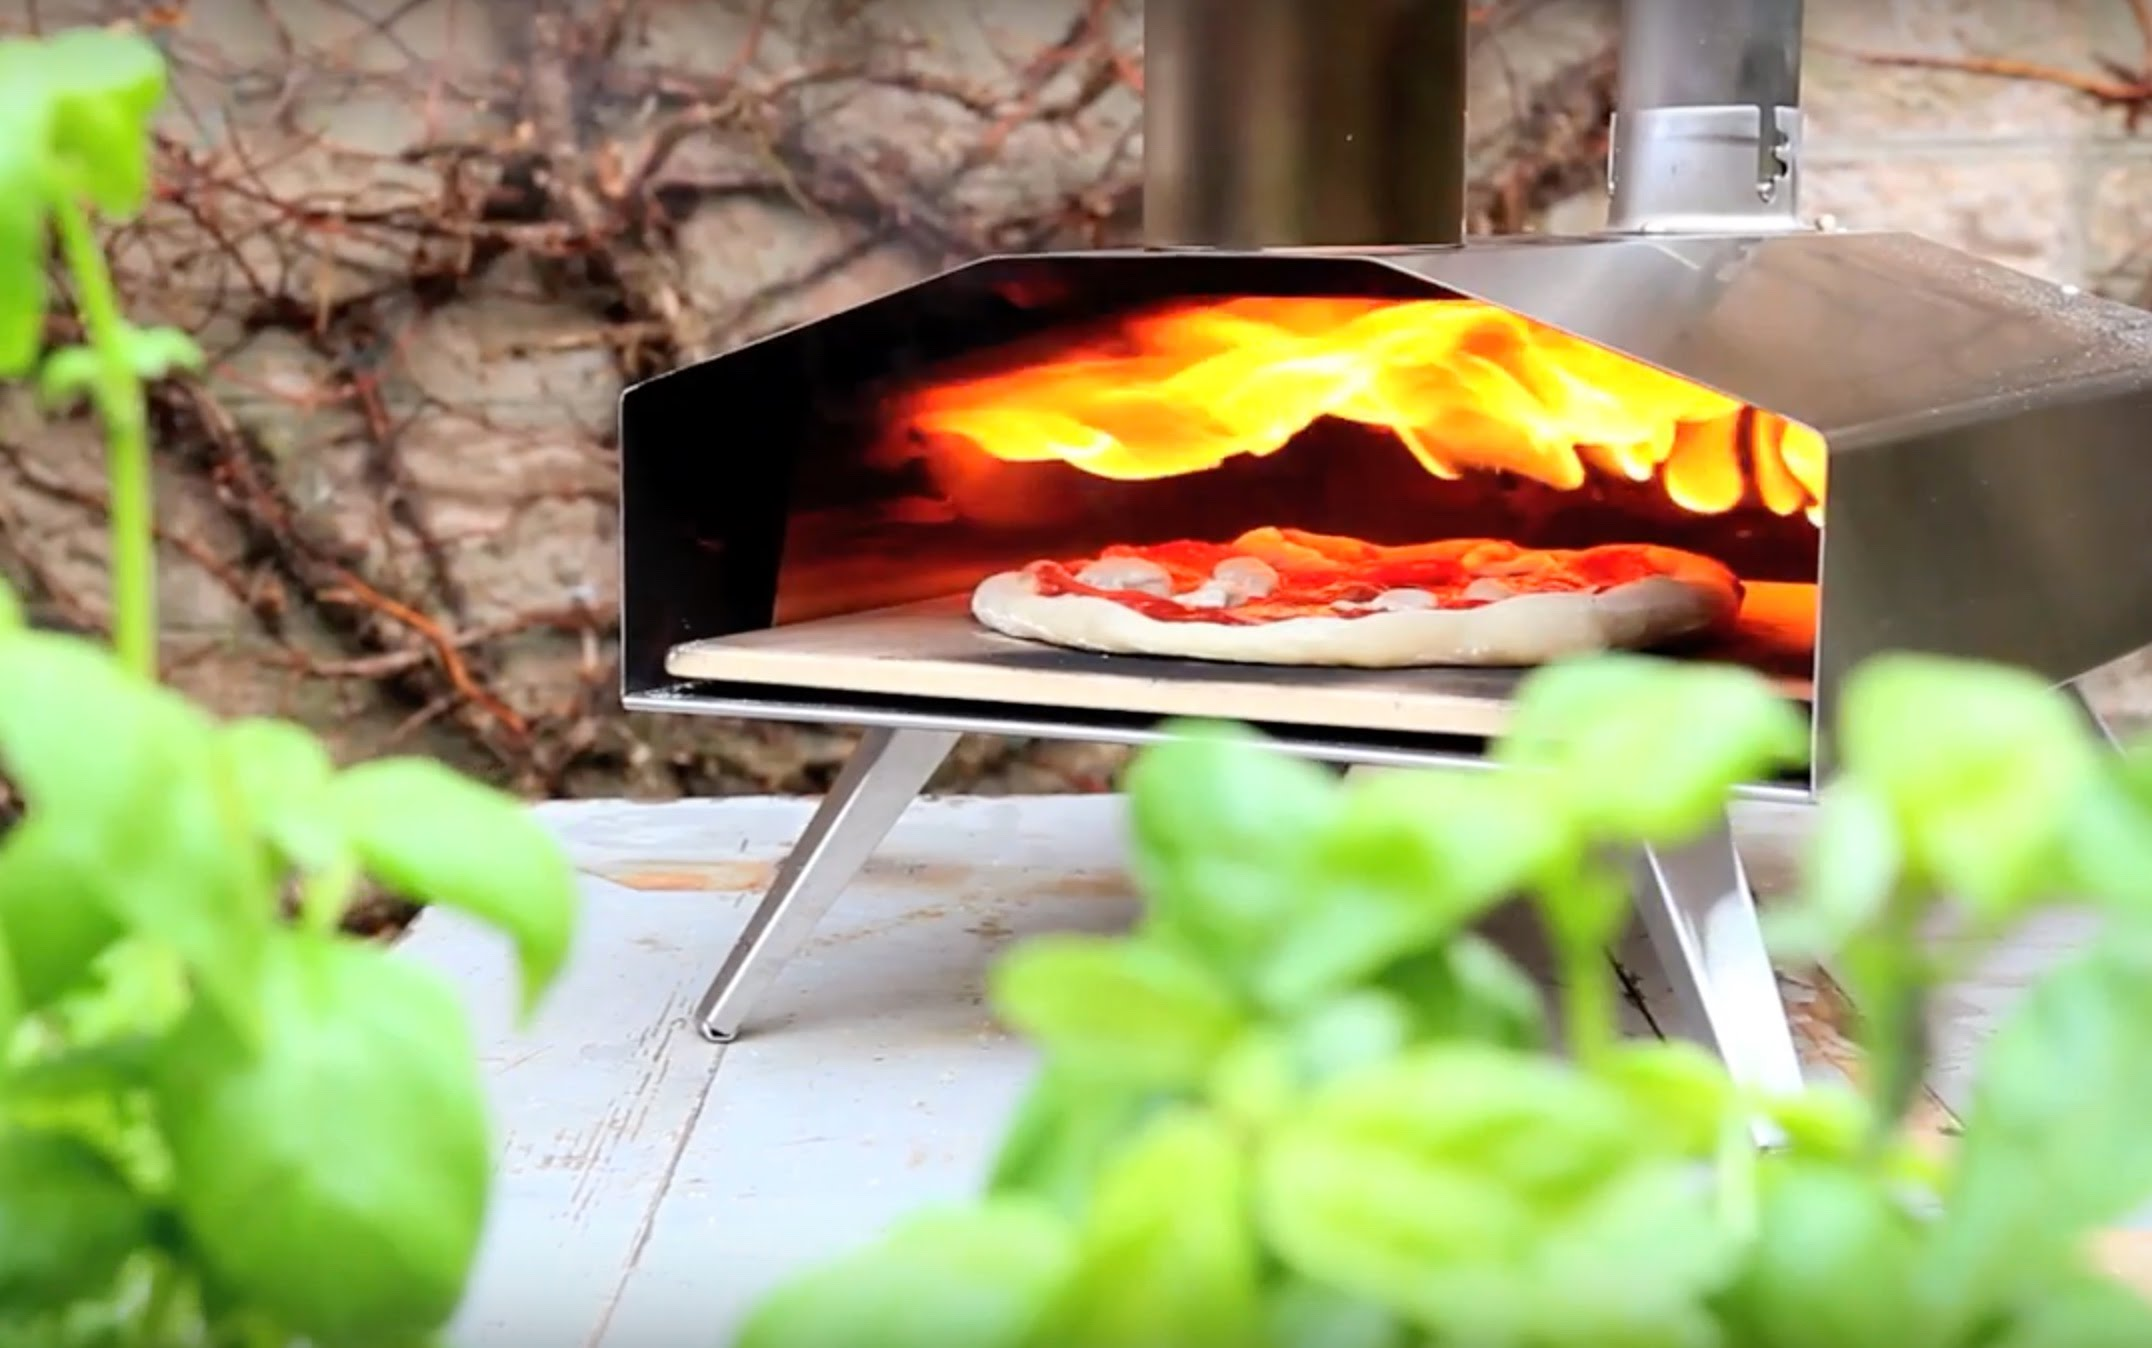 Cute Mini-oven is a Pizza Lover's Dream